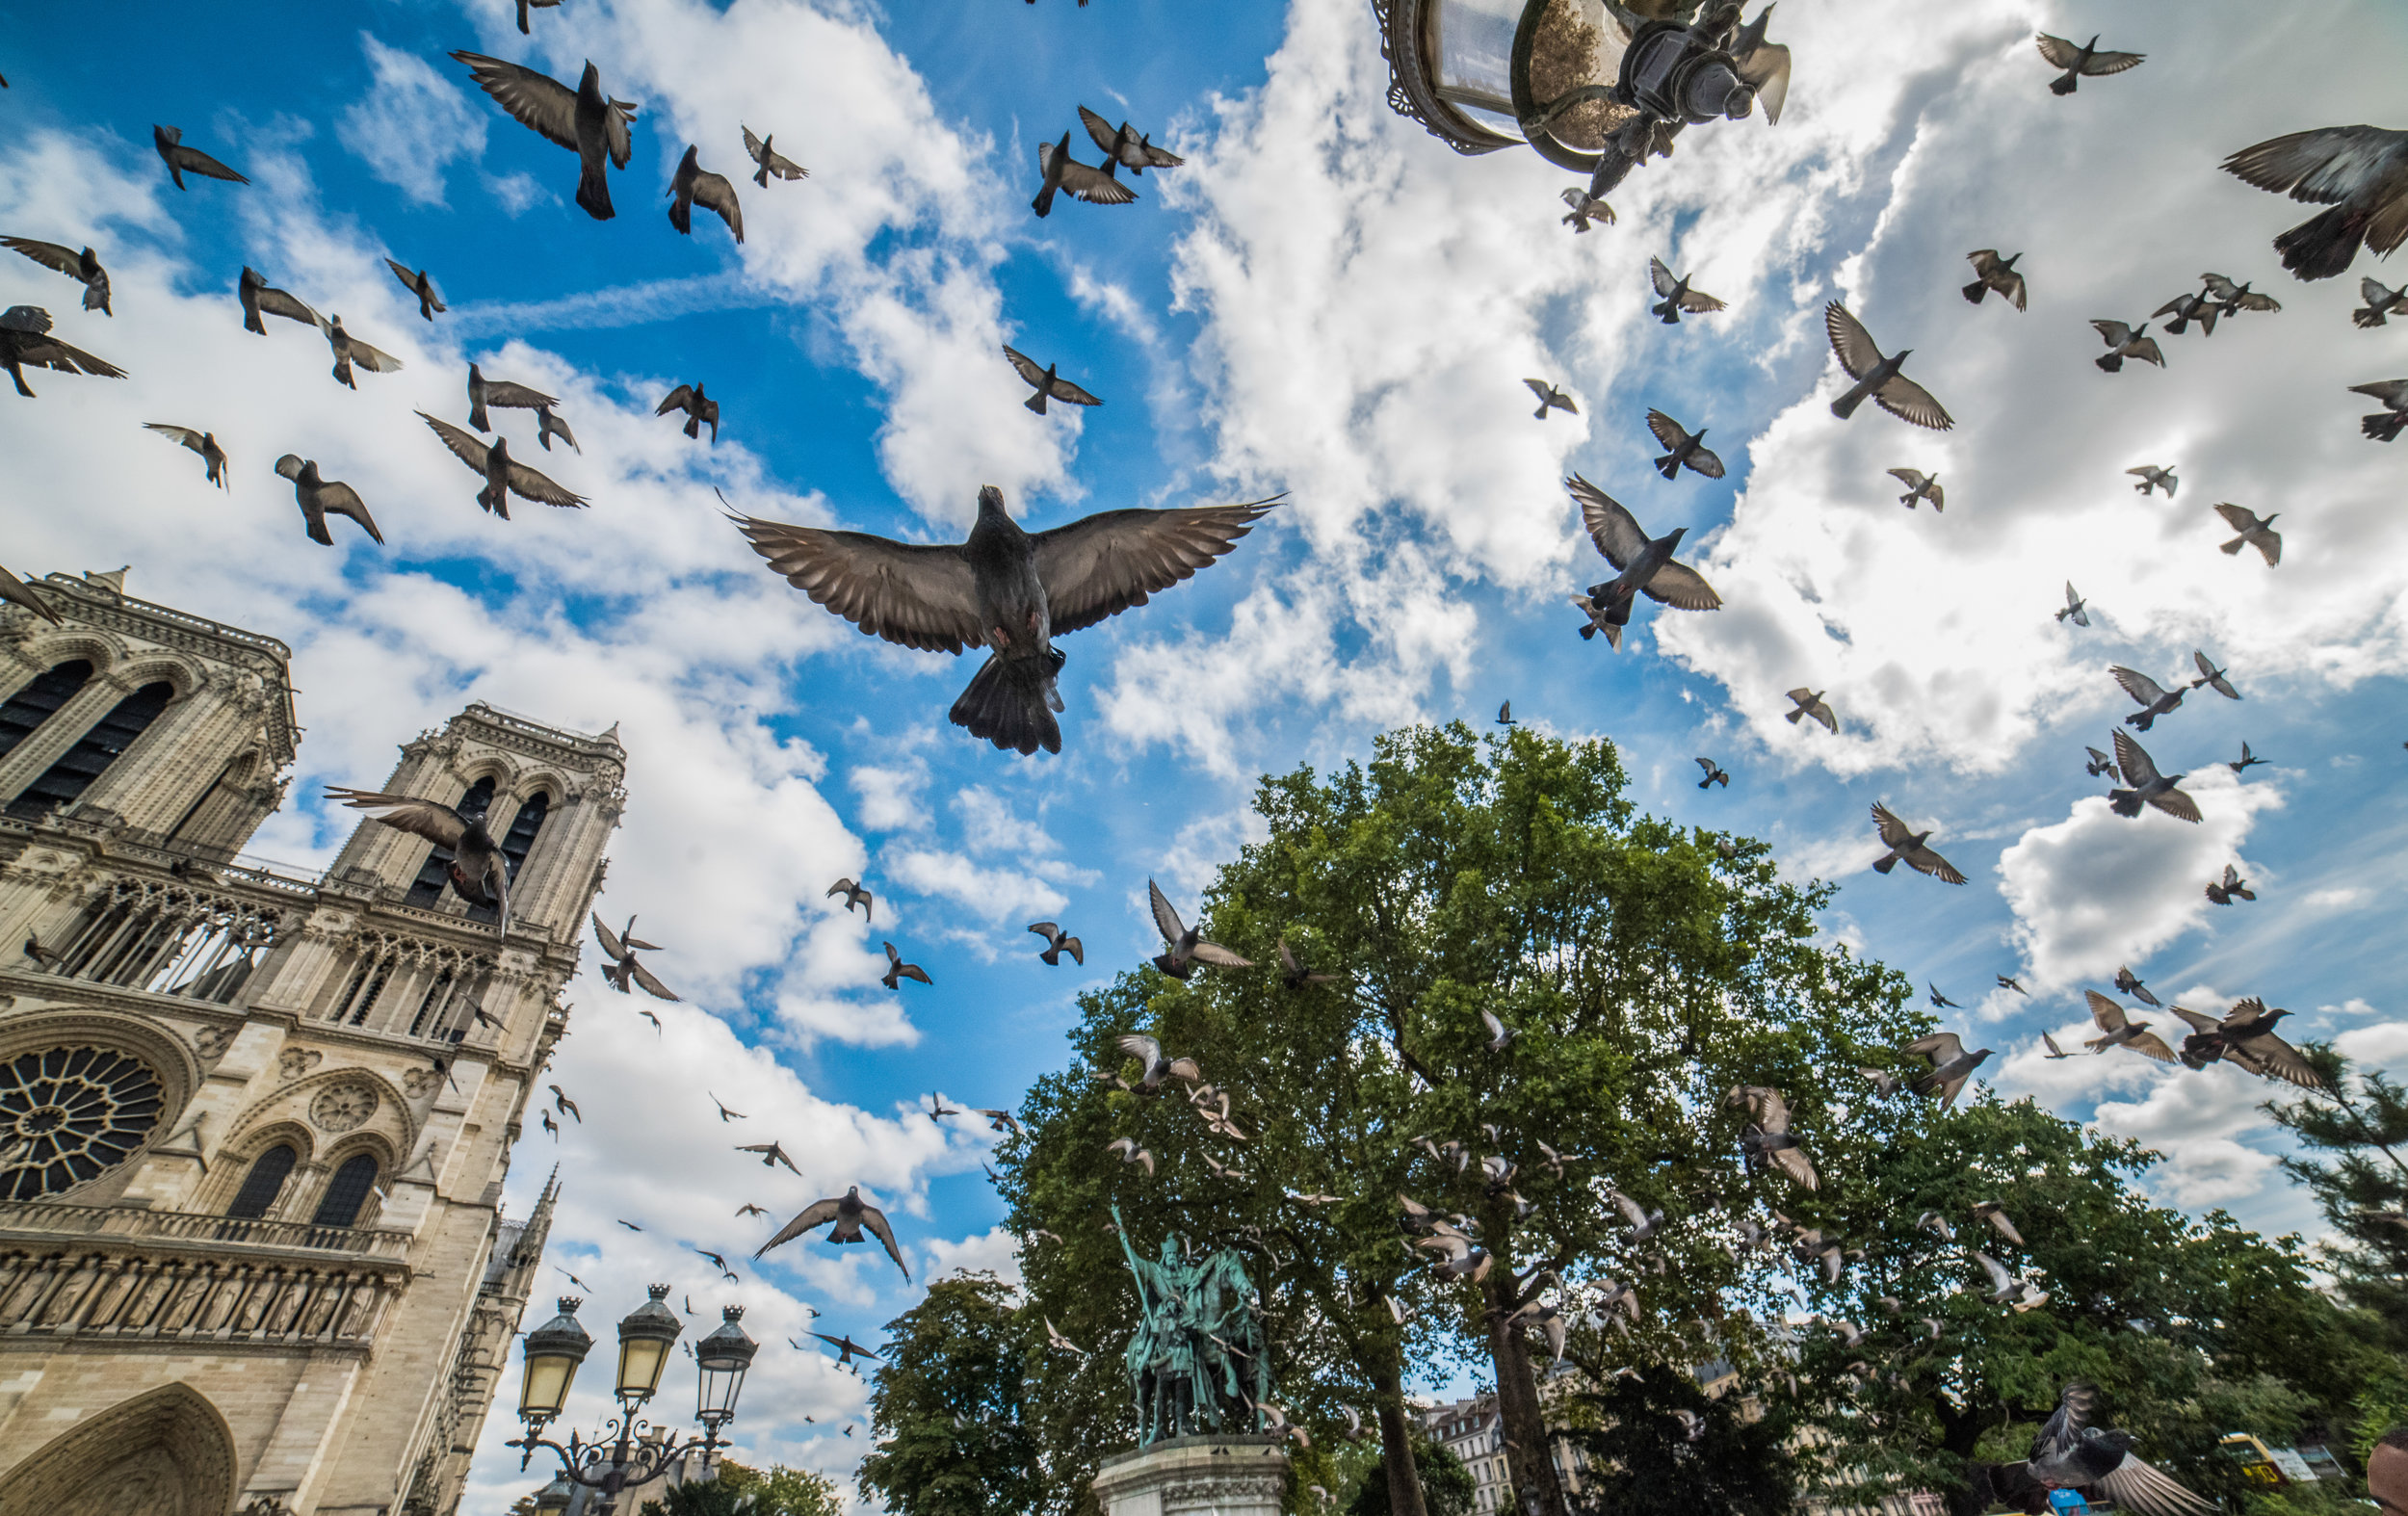 22 Birds Of Paris - Everest Maher.jpg